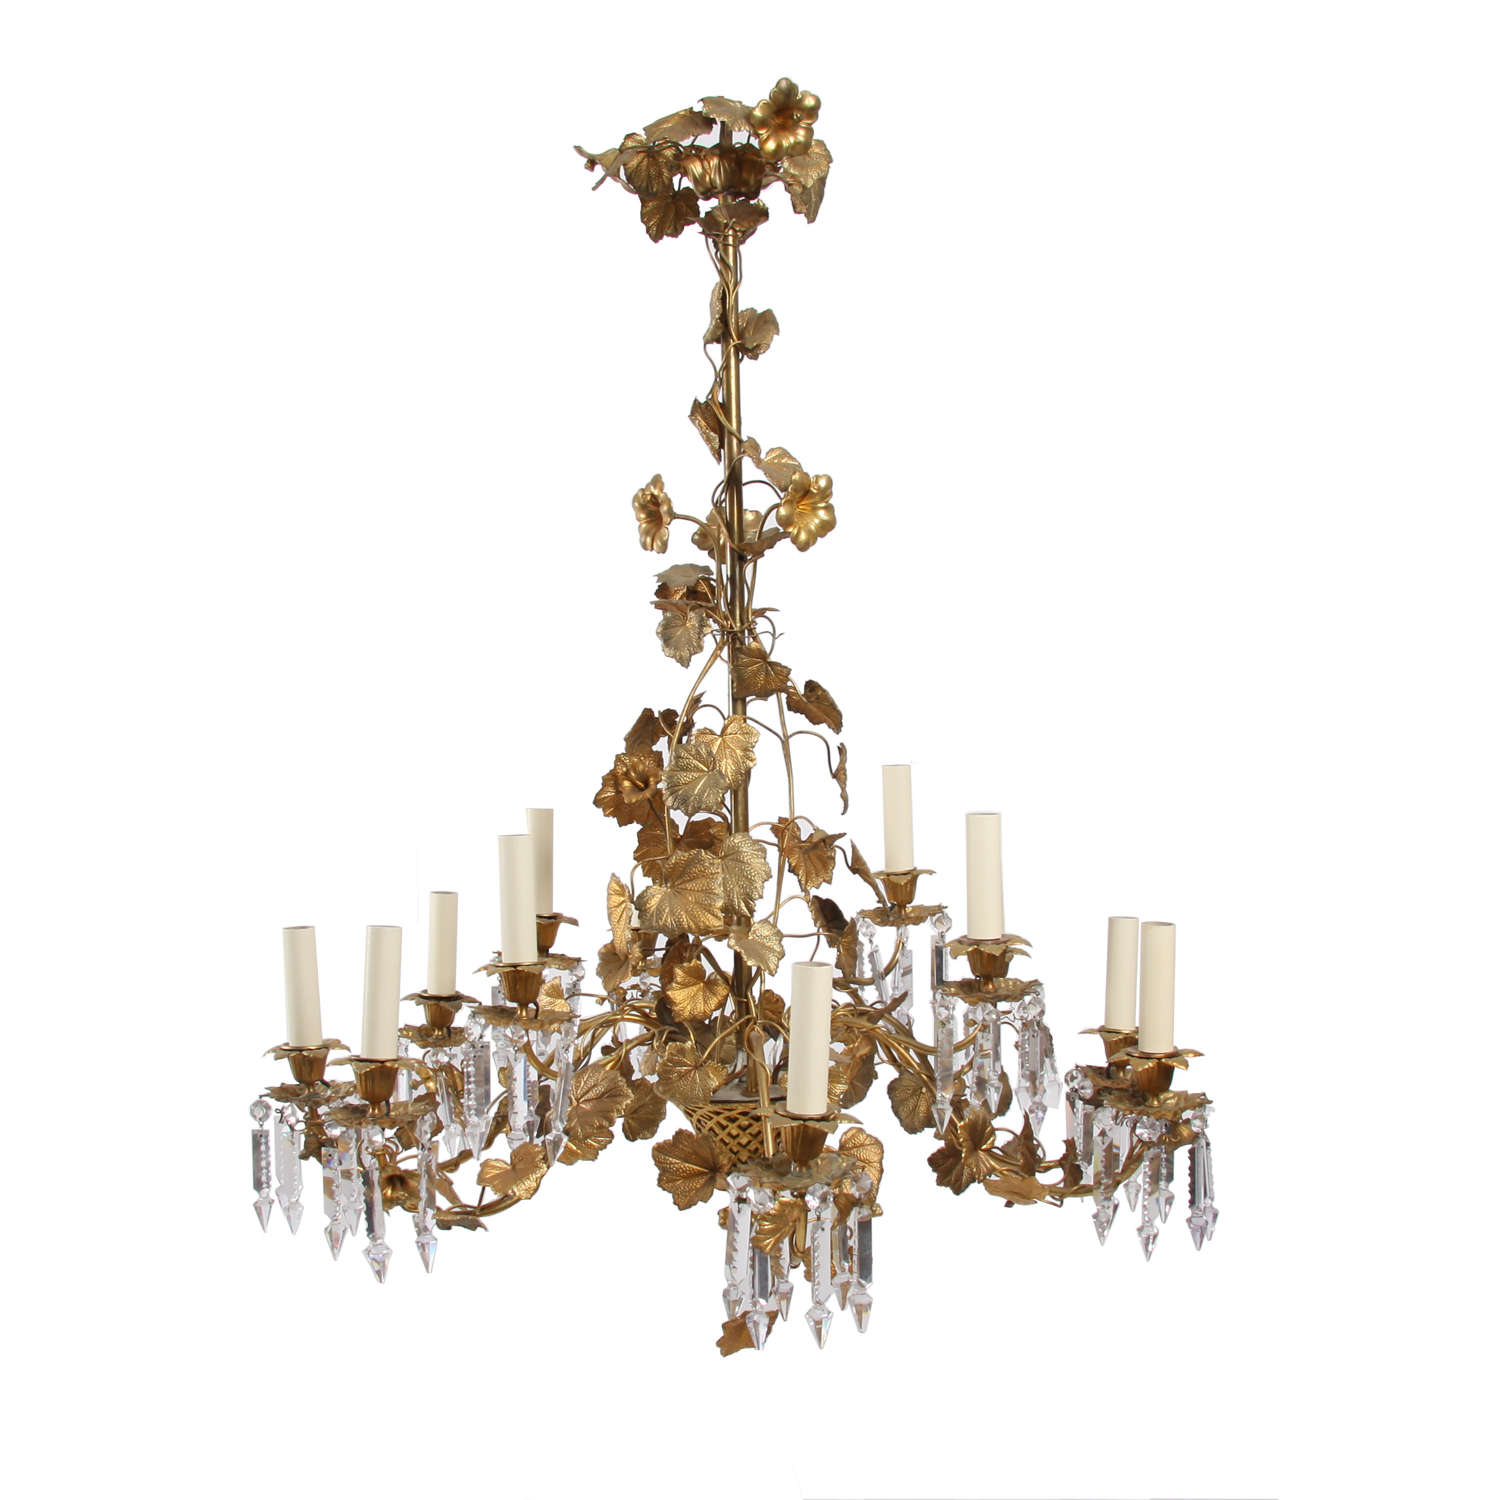 Gilt Metal and Crystal Chandelier With Leaf and Flower Detail